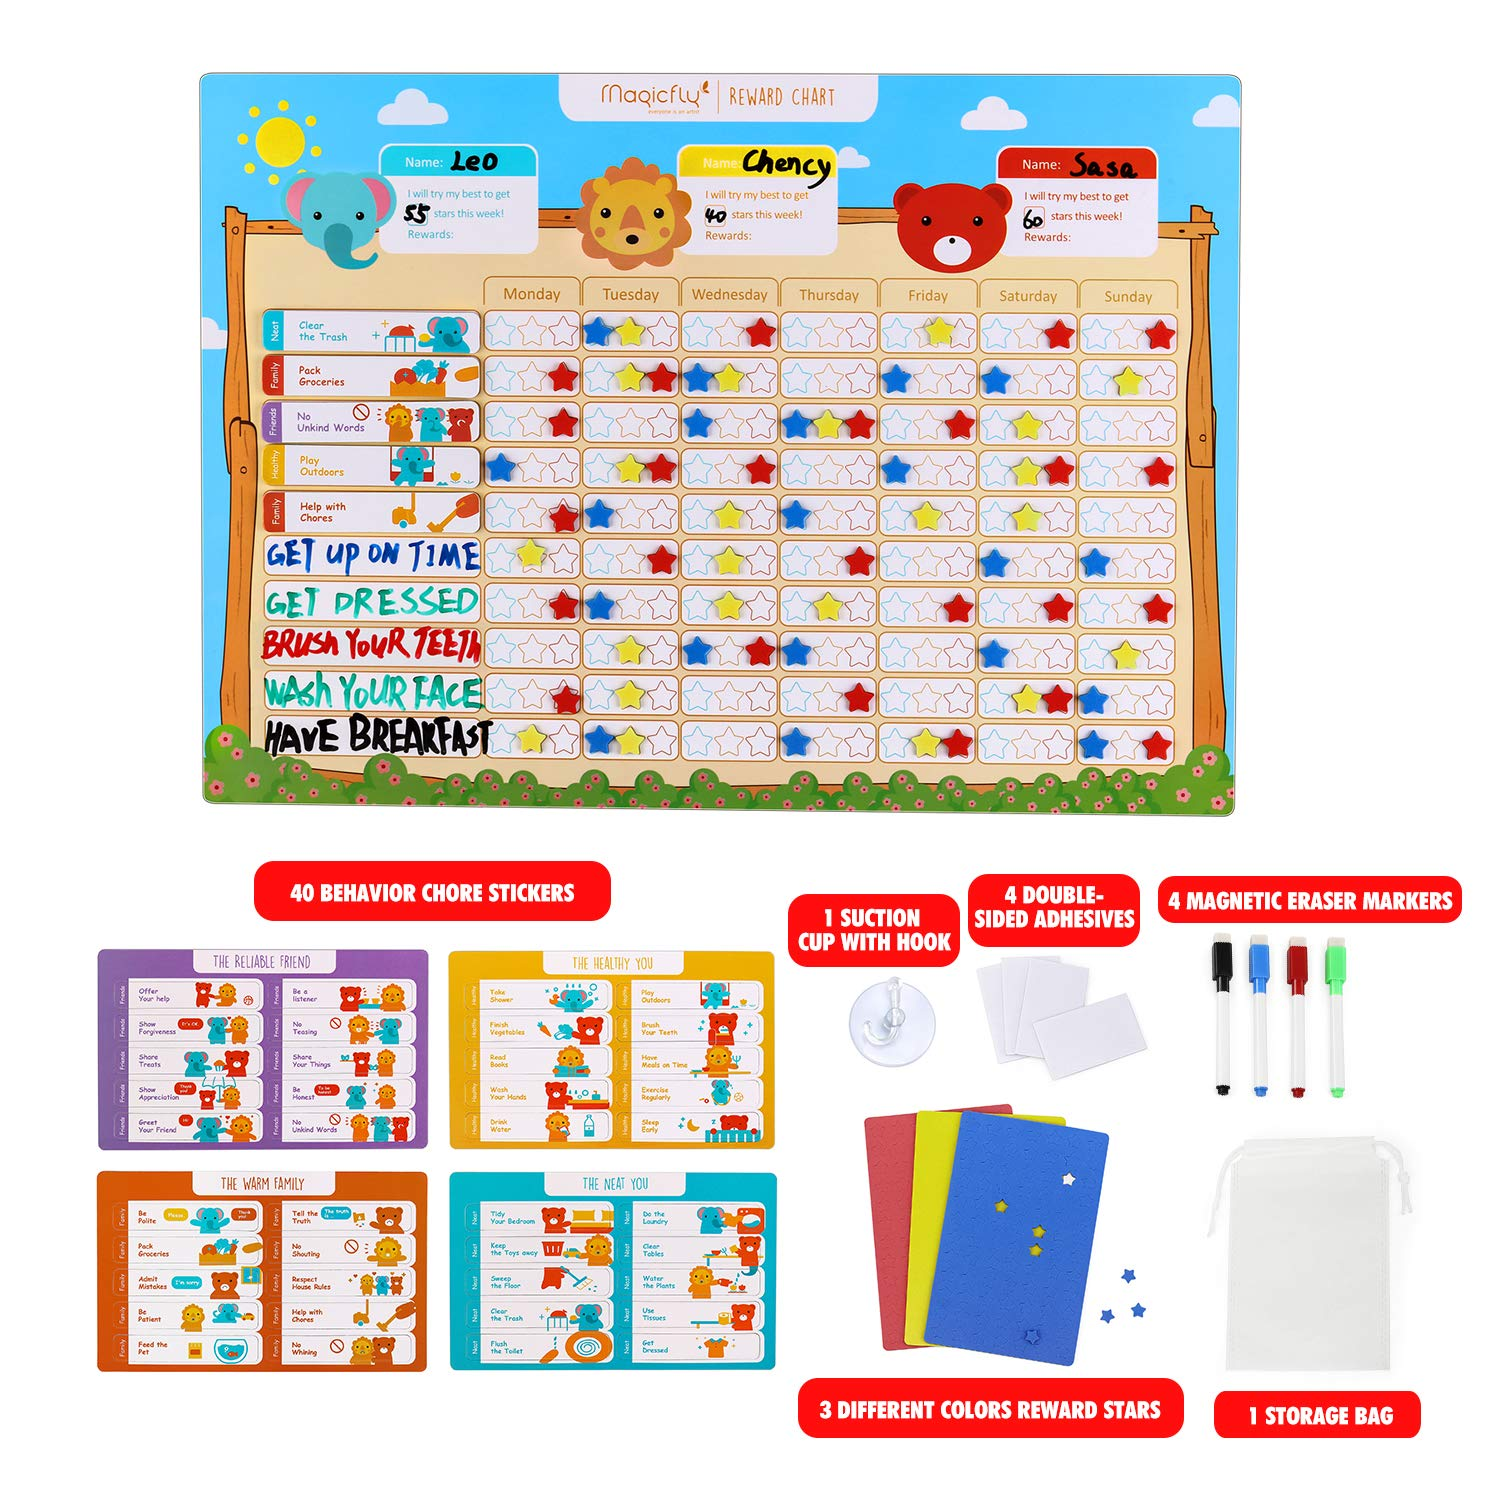 Training Responsibility Magnetic Star Chore Chart for Multiple Kids Magicfly Behavior Chart for Kids 17 X 12 Inch Dry Erase Reward Chart for Toddlers Kids Wall Sticker Magnets Family Calendar Board